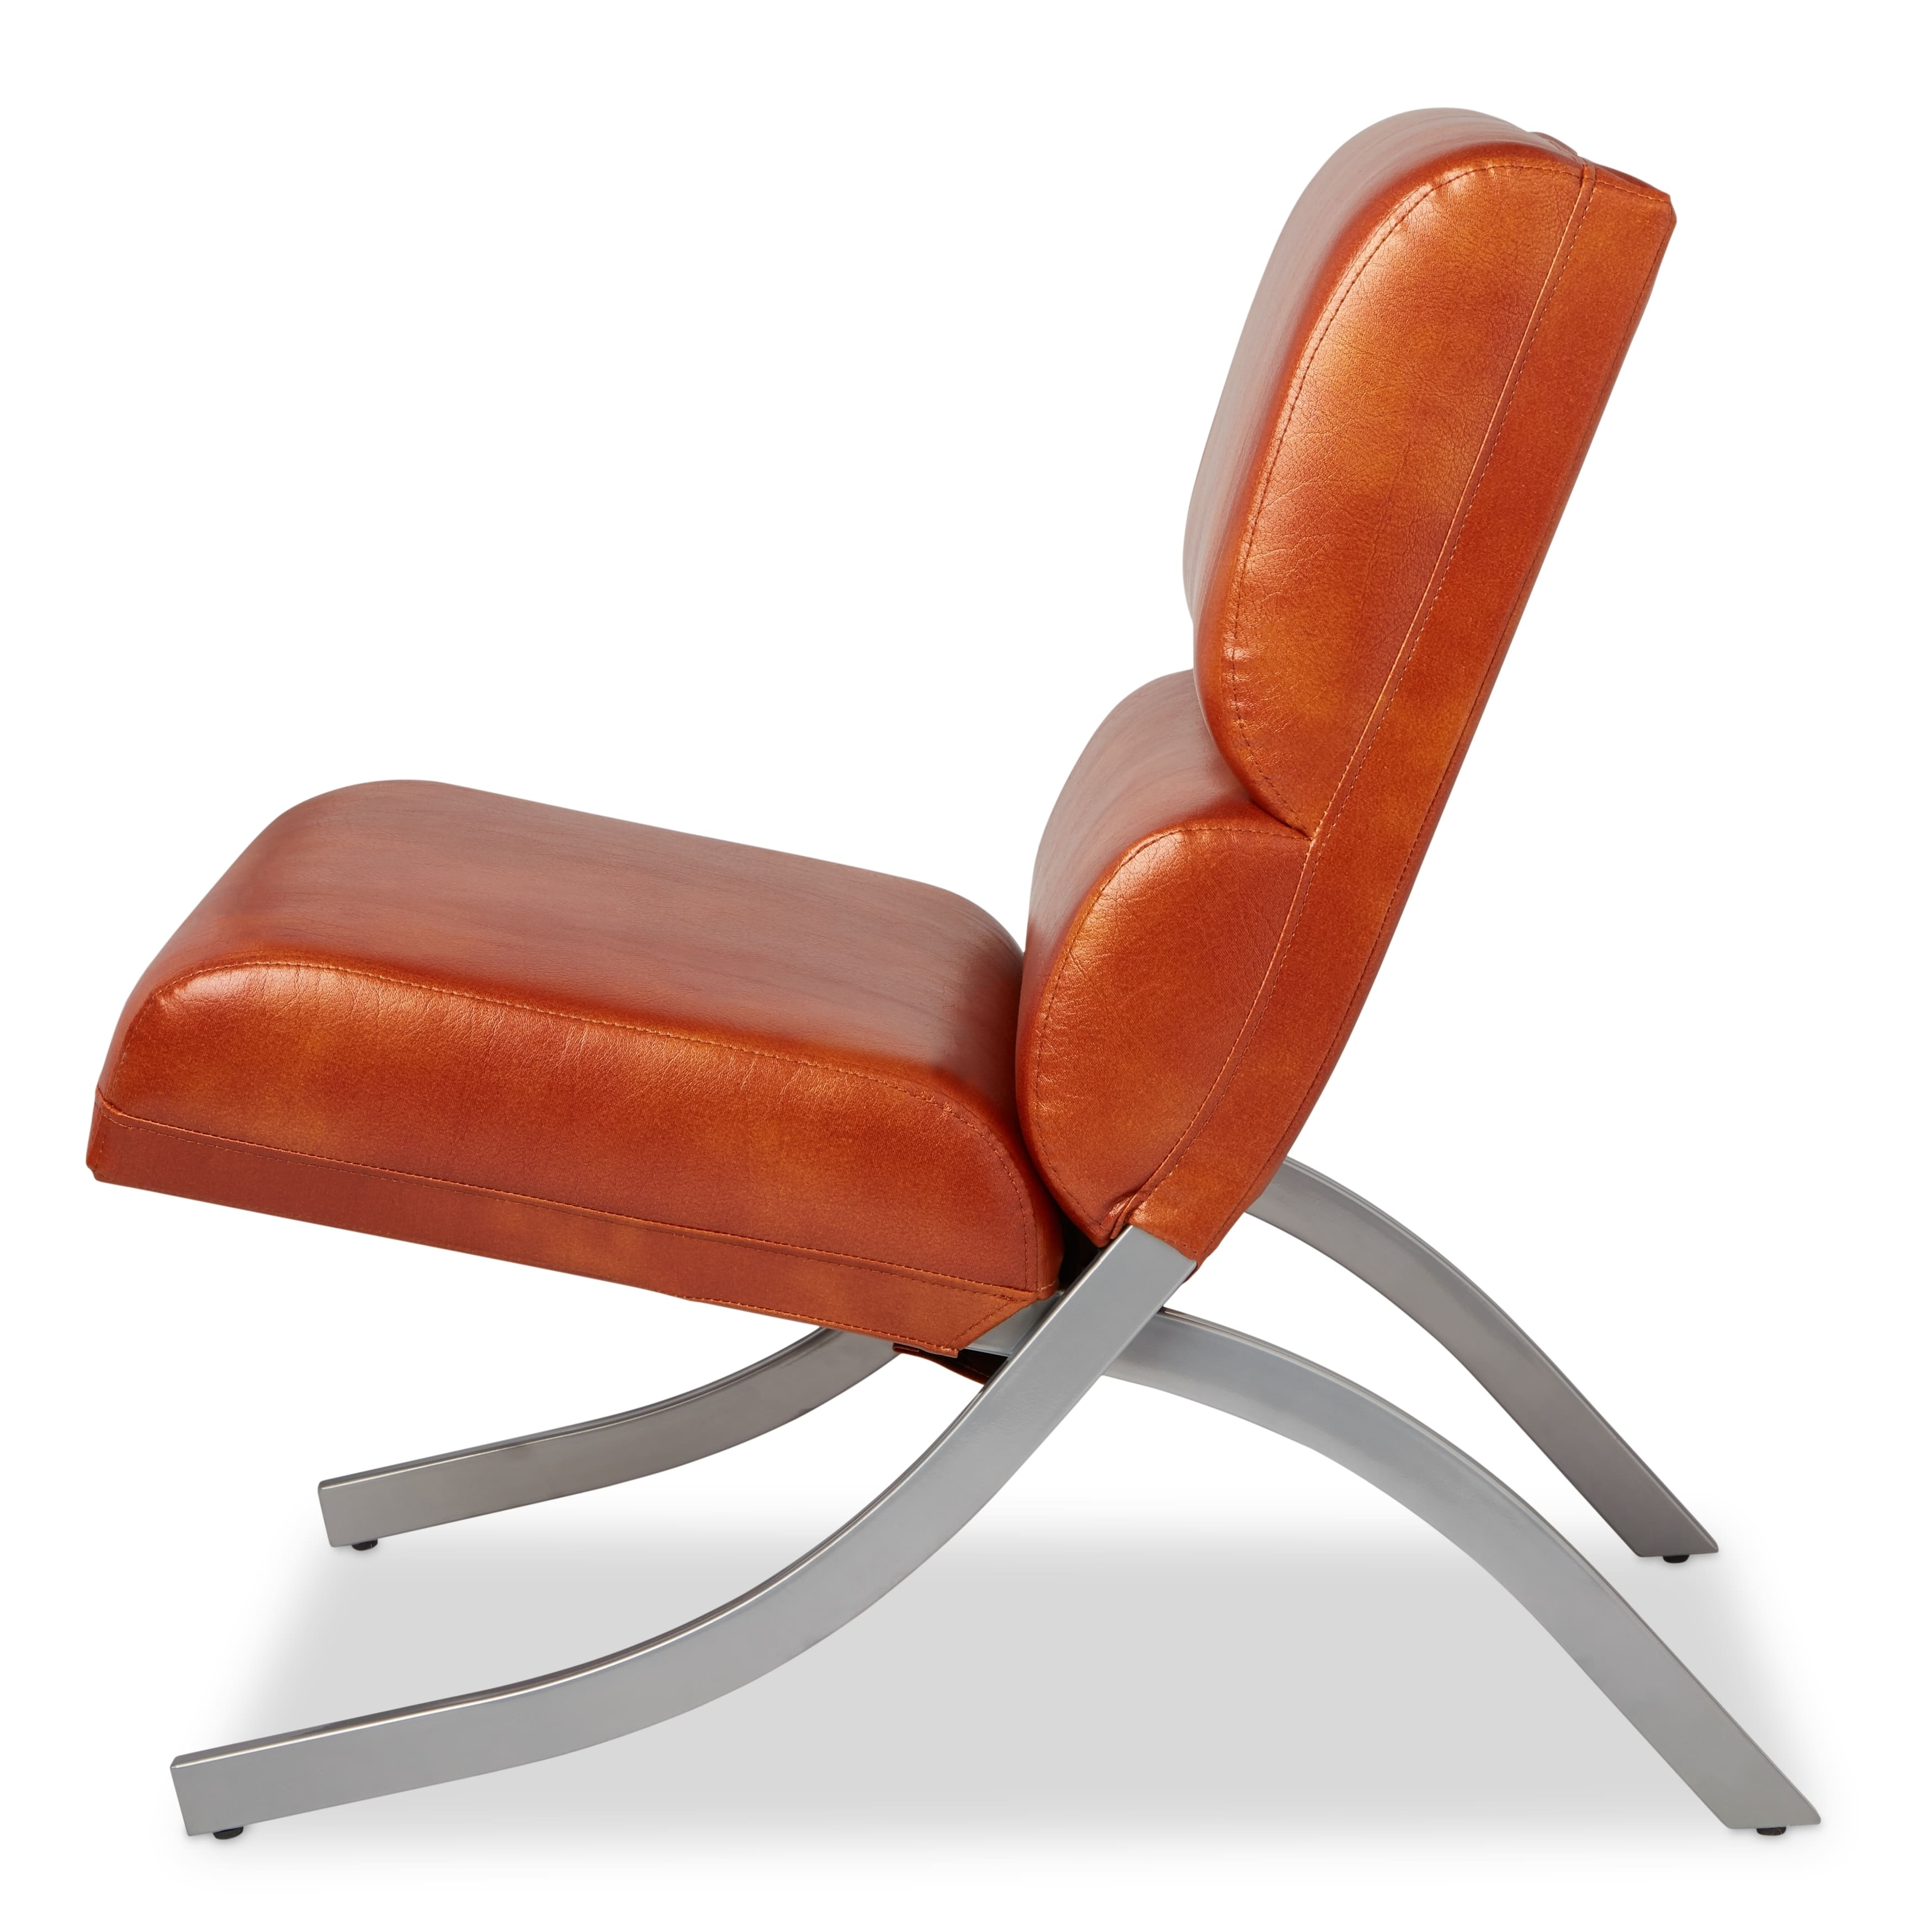 Rialto Rust Faux Leather Chair: Living Room Chairs For Less